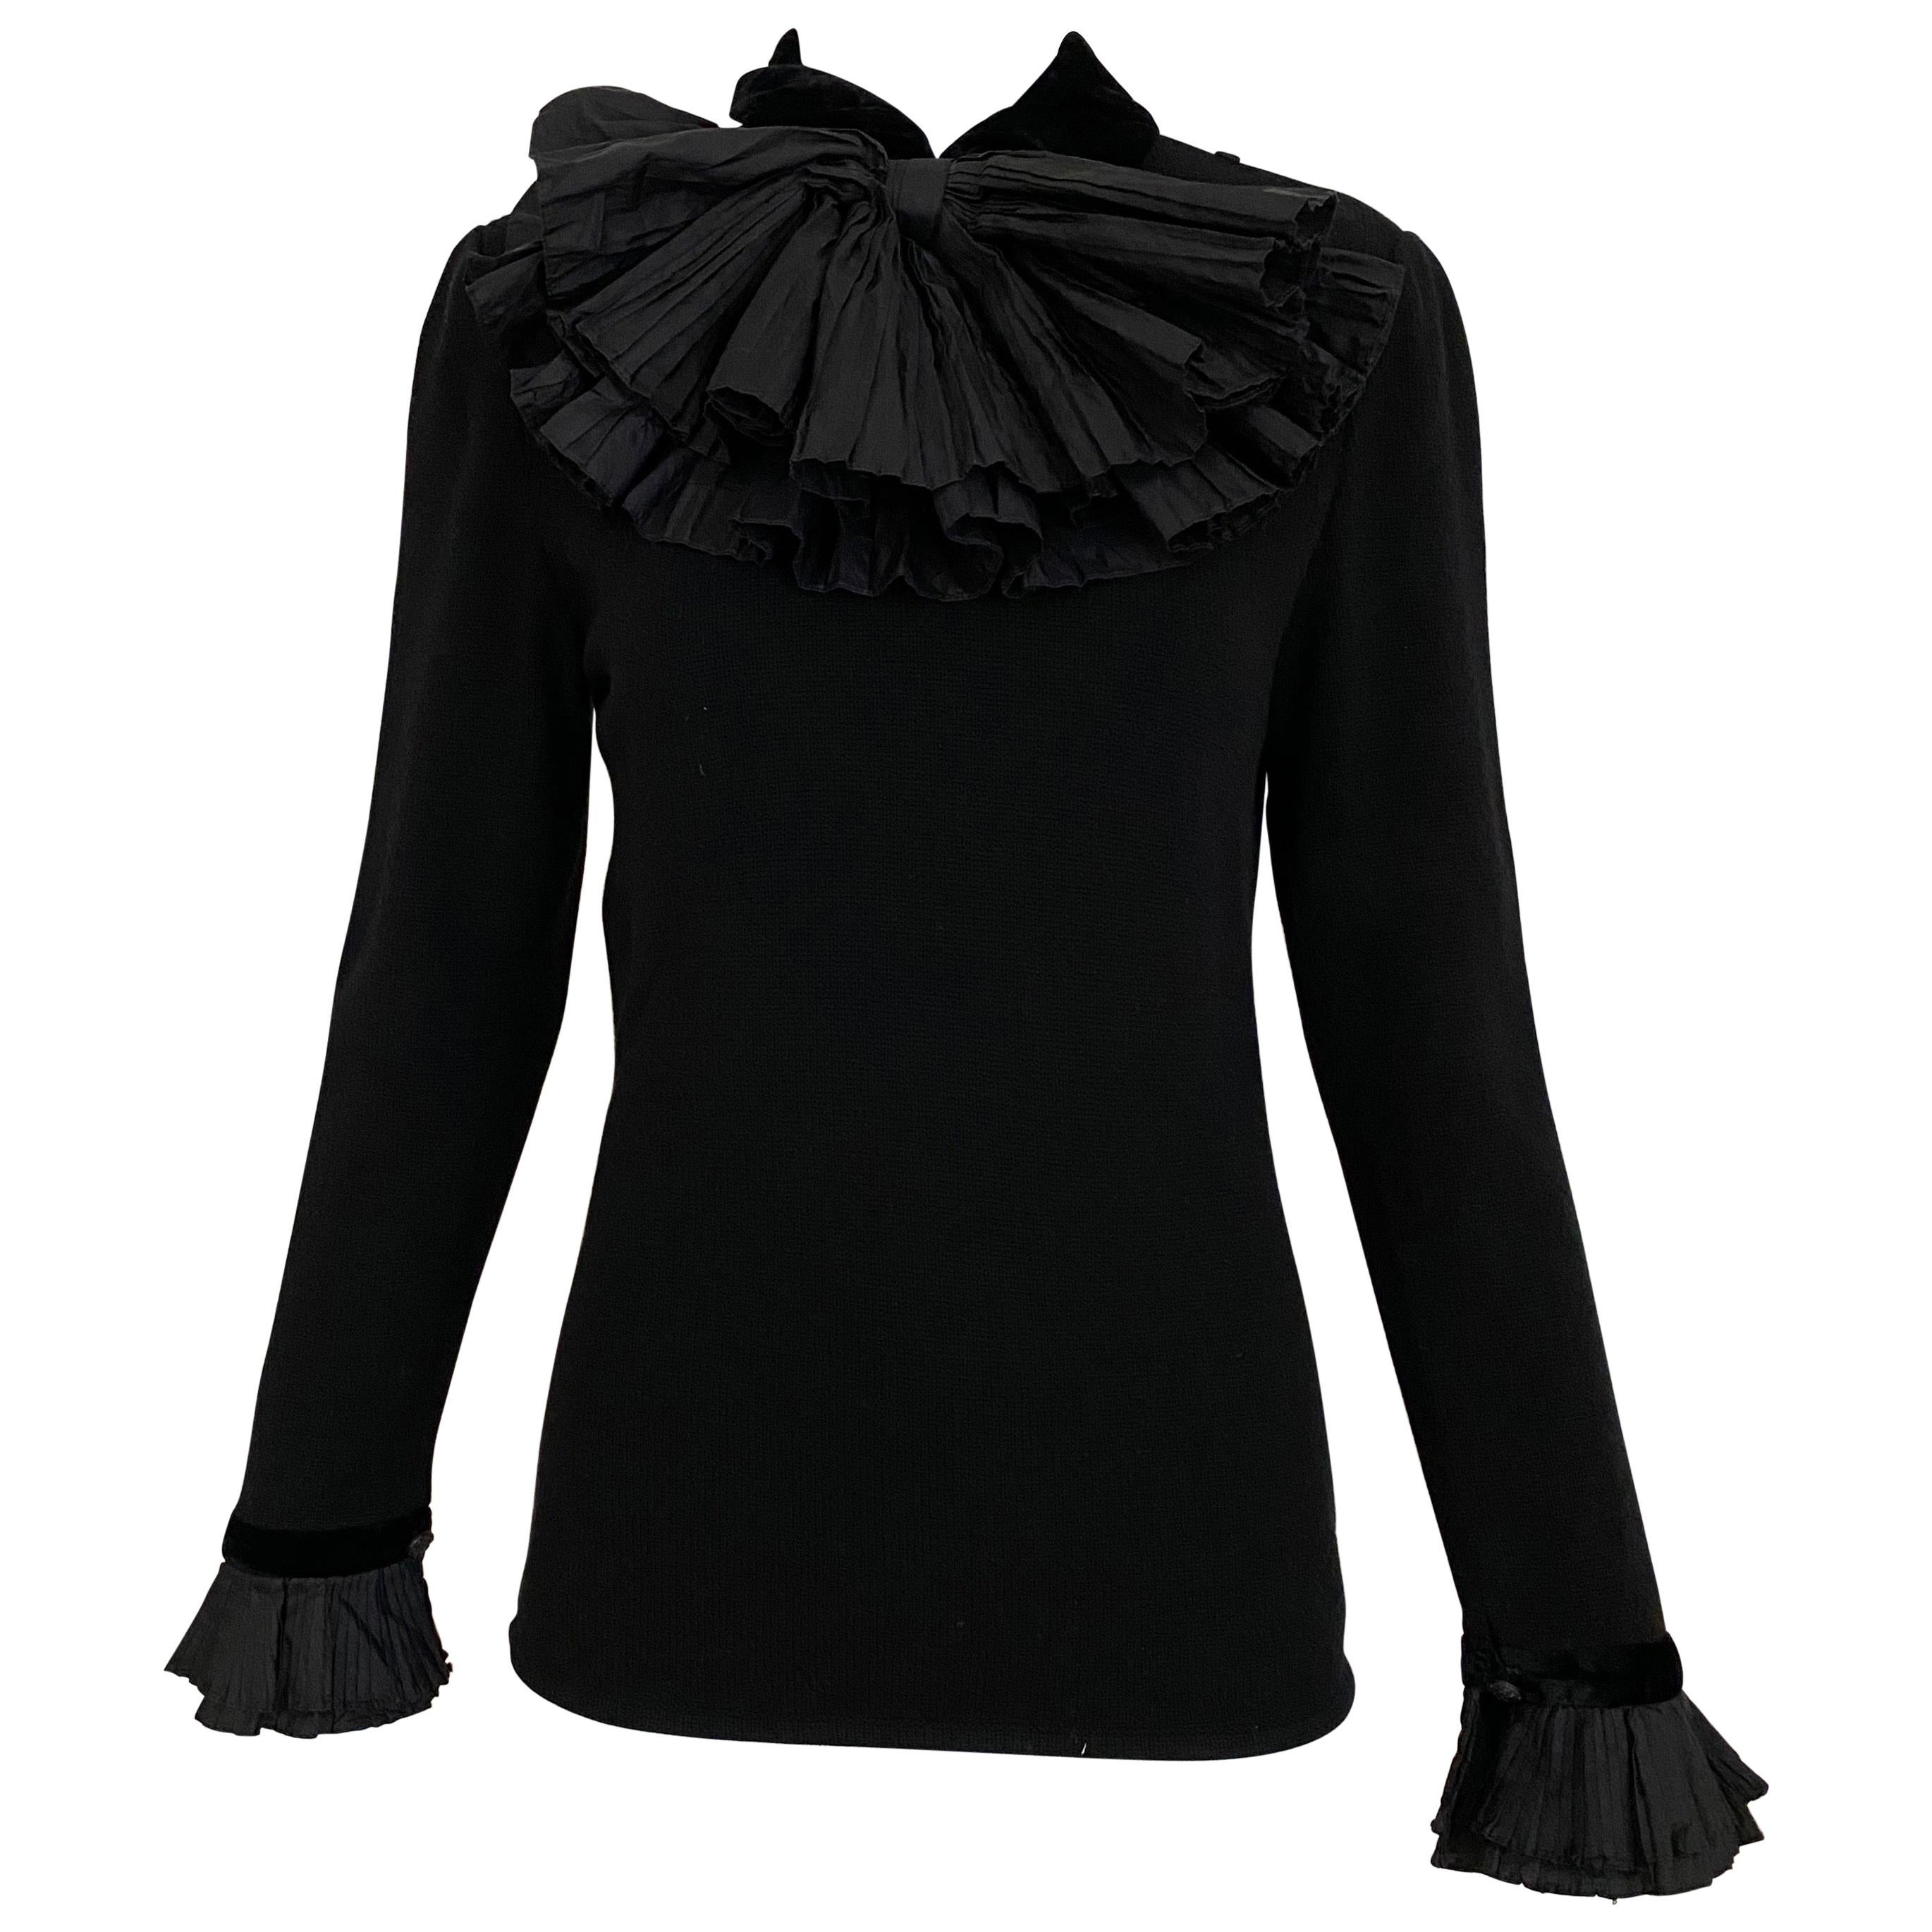 Vintage Valentino Black Cashmere Sweater with Bow